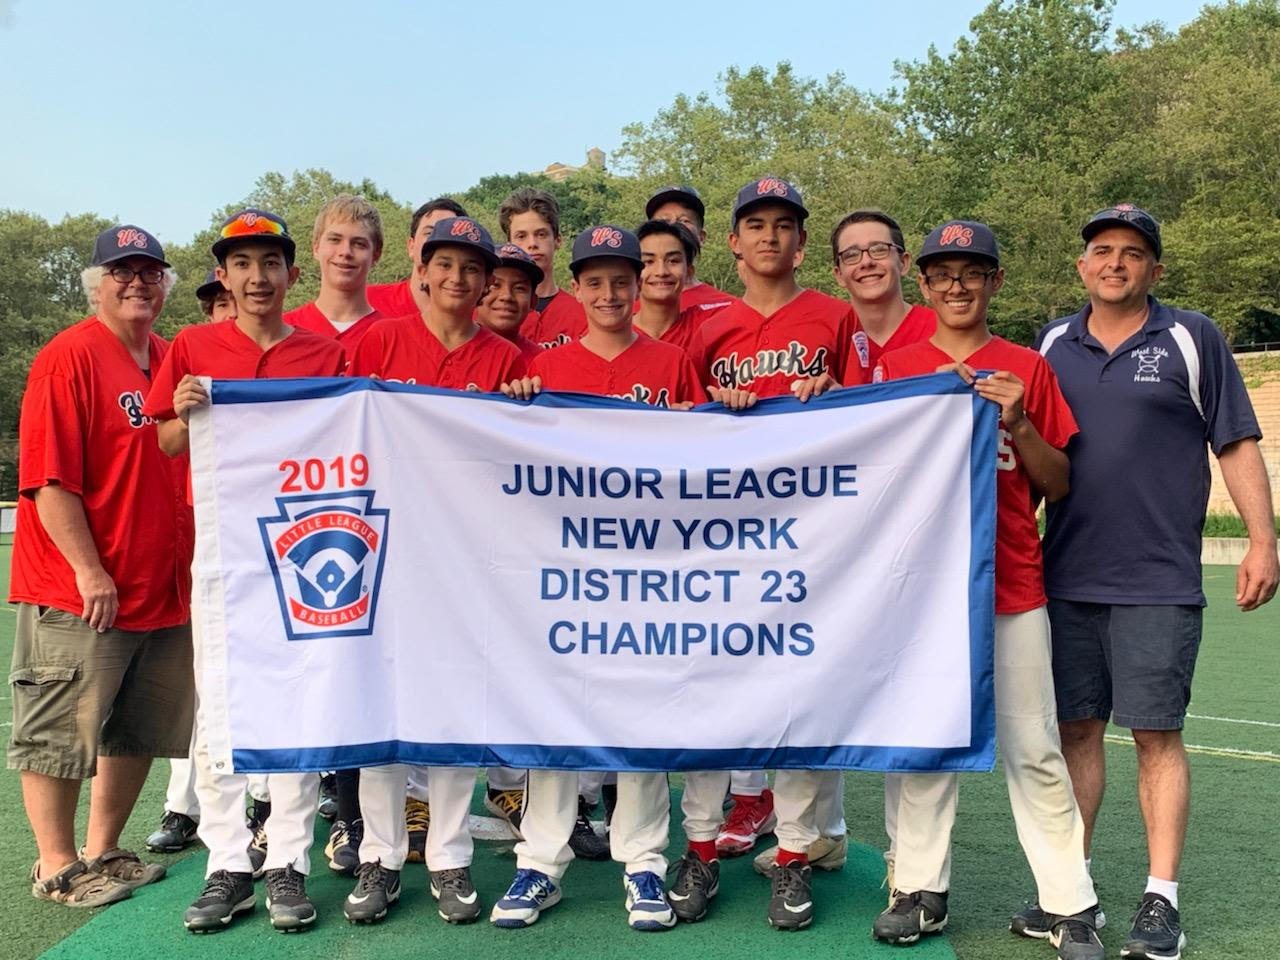 West Side's Juniors Baseball Tournament Team Wins District 23 Championship!